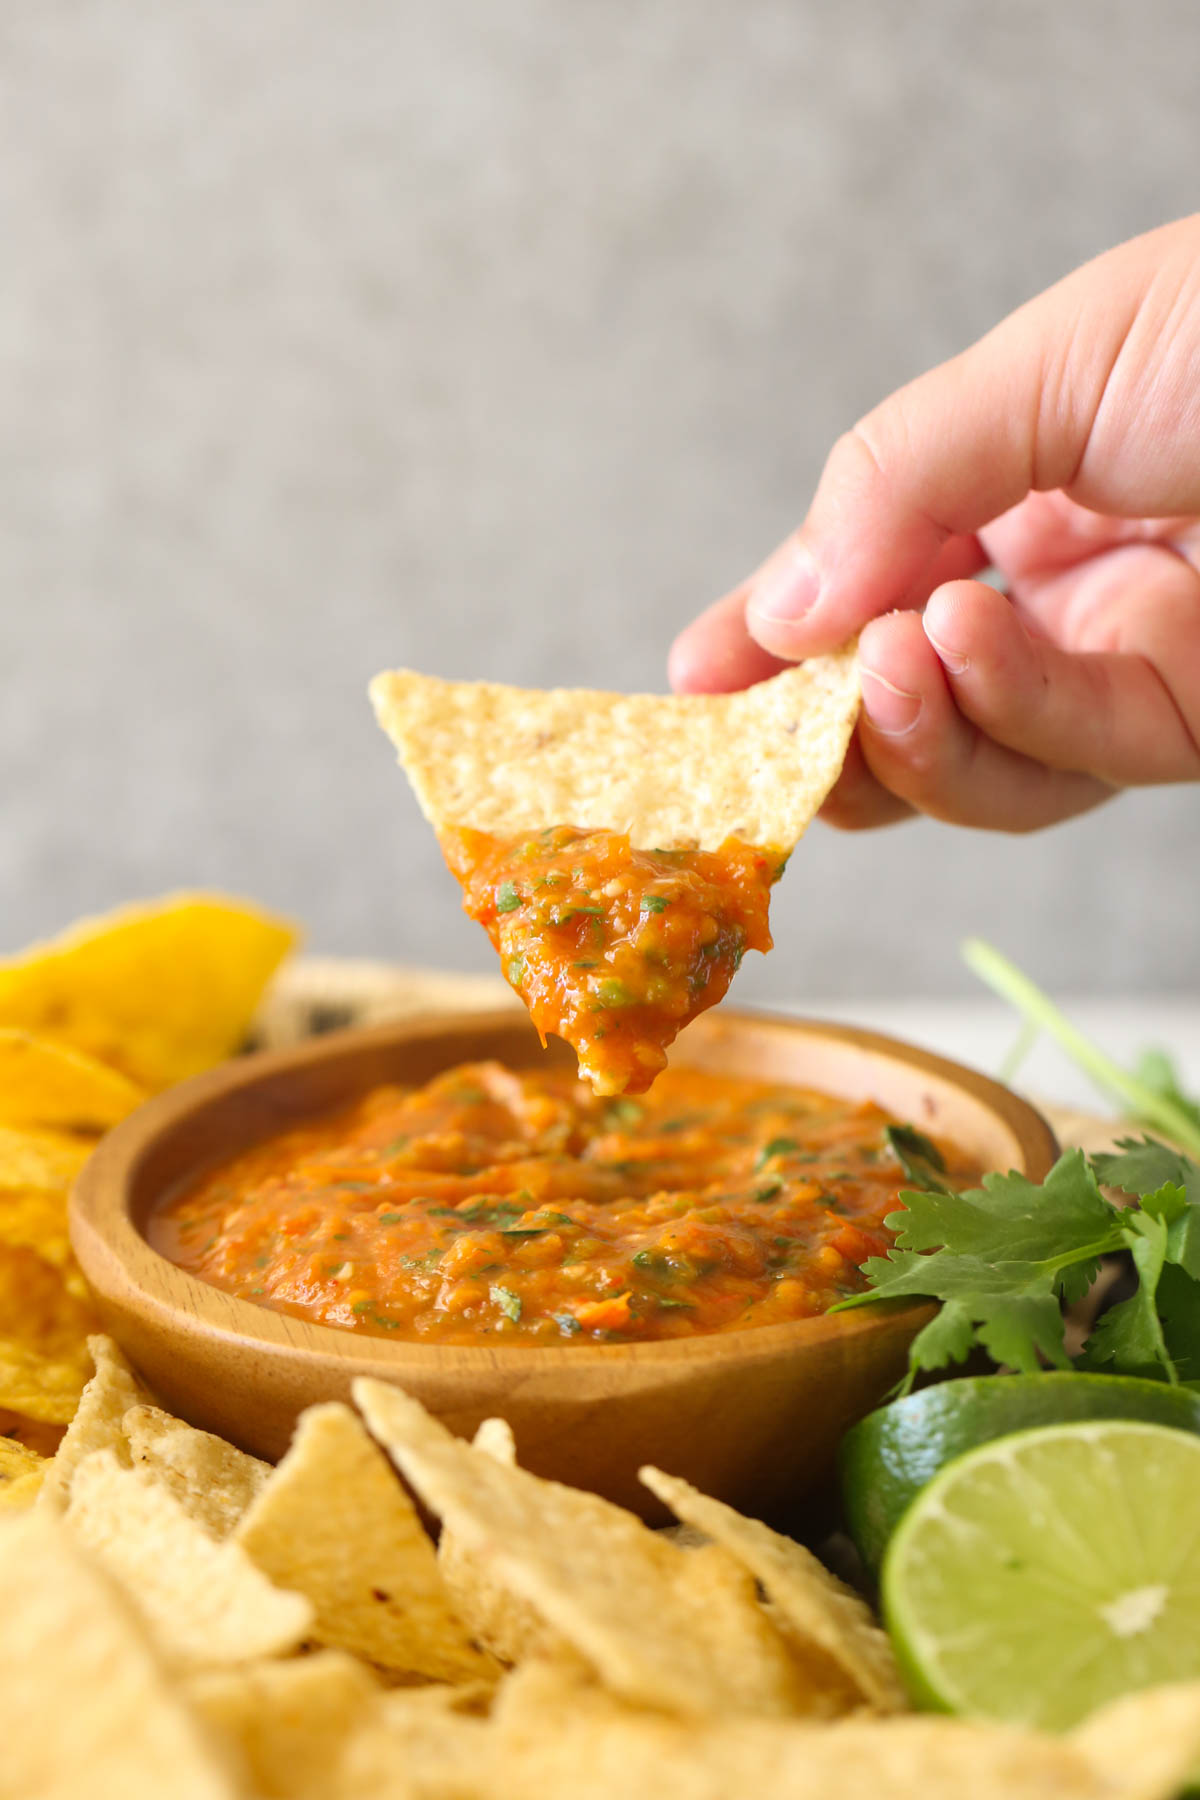 A hand holding a tortilla chip with Roasted Tomato Salsa on it above a small wood bowl of Roasted Tomato Salsa with tortilla chips, two lime halves and fresh cilantro next to the bowl.